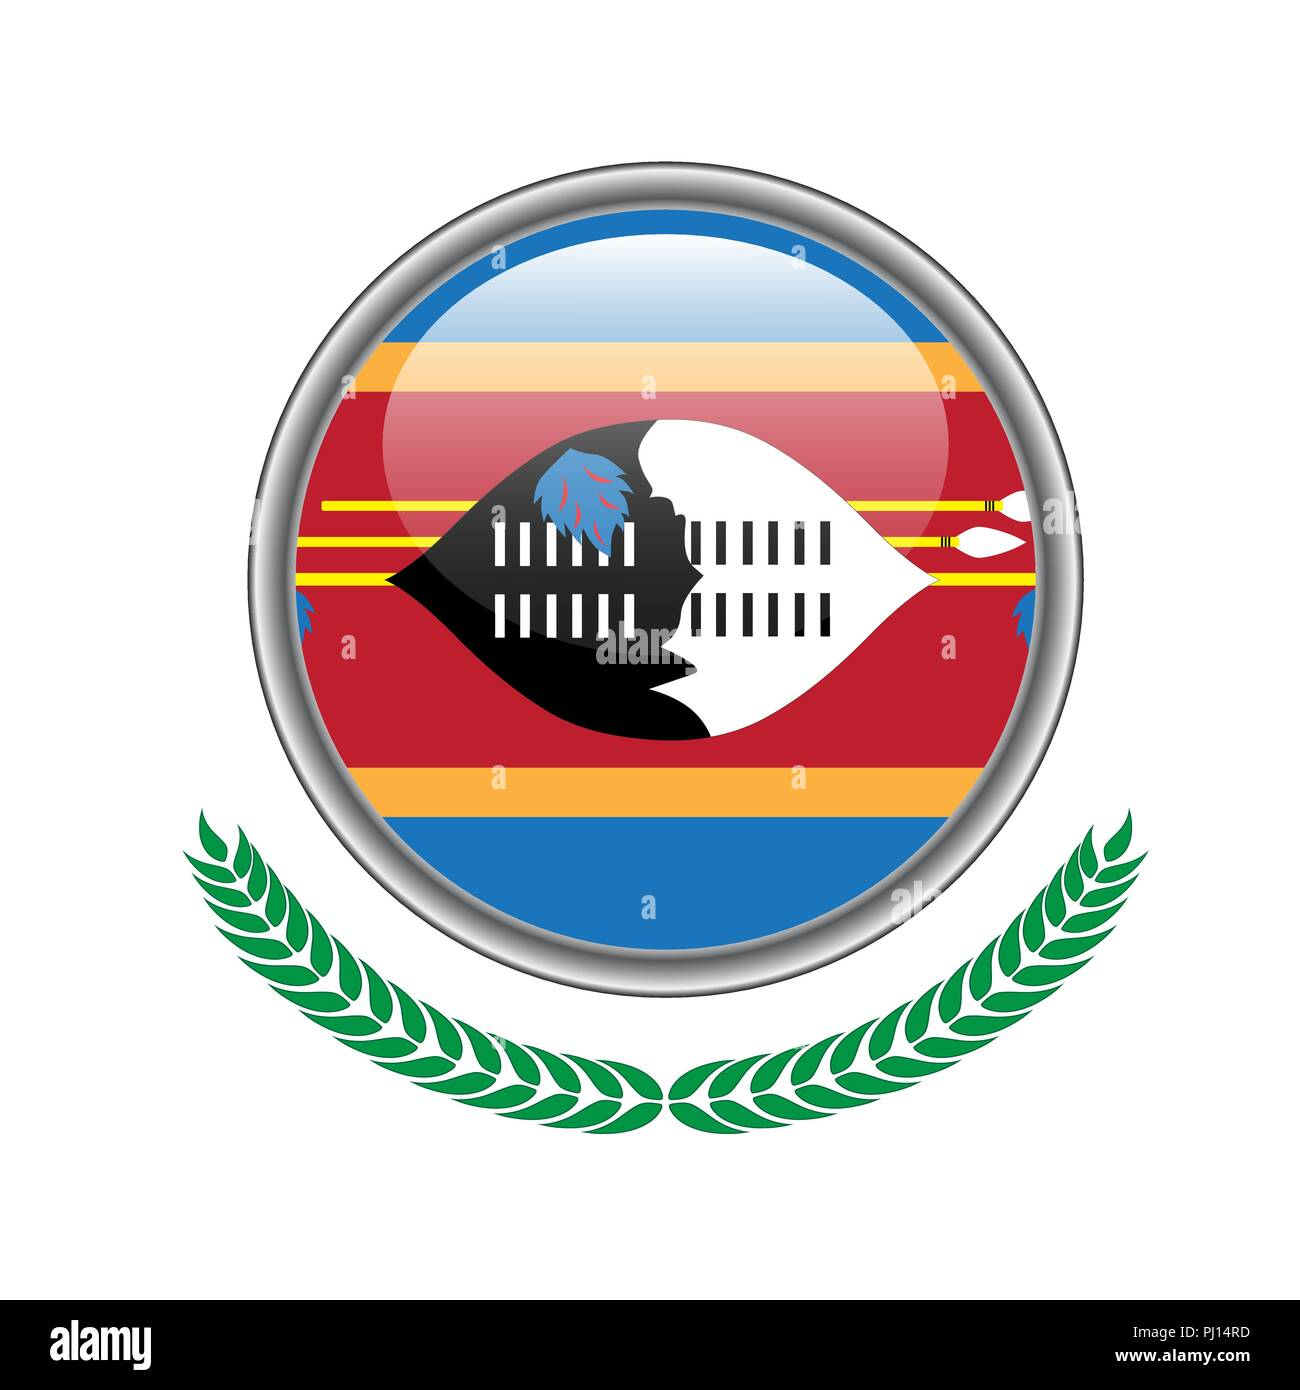 Swaziland flag button. Swaziland flag icon. Vector illustration of swaziland flag on white background. Stock Vector